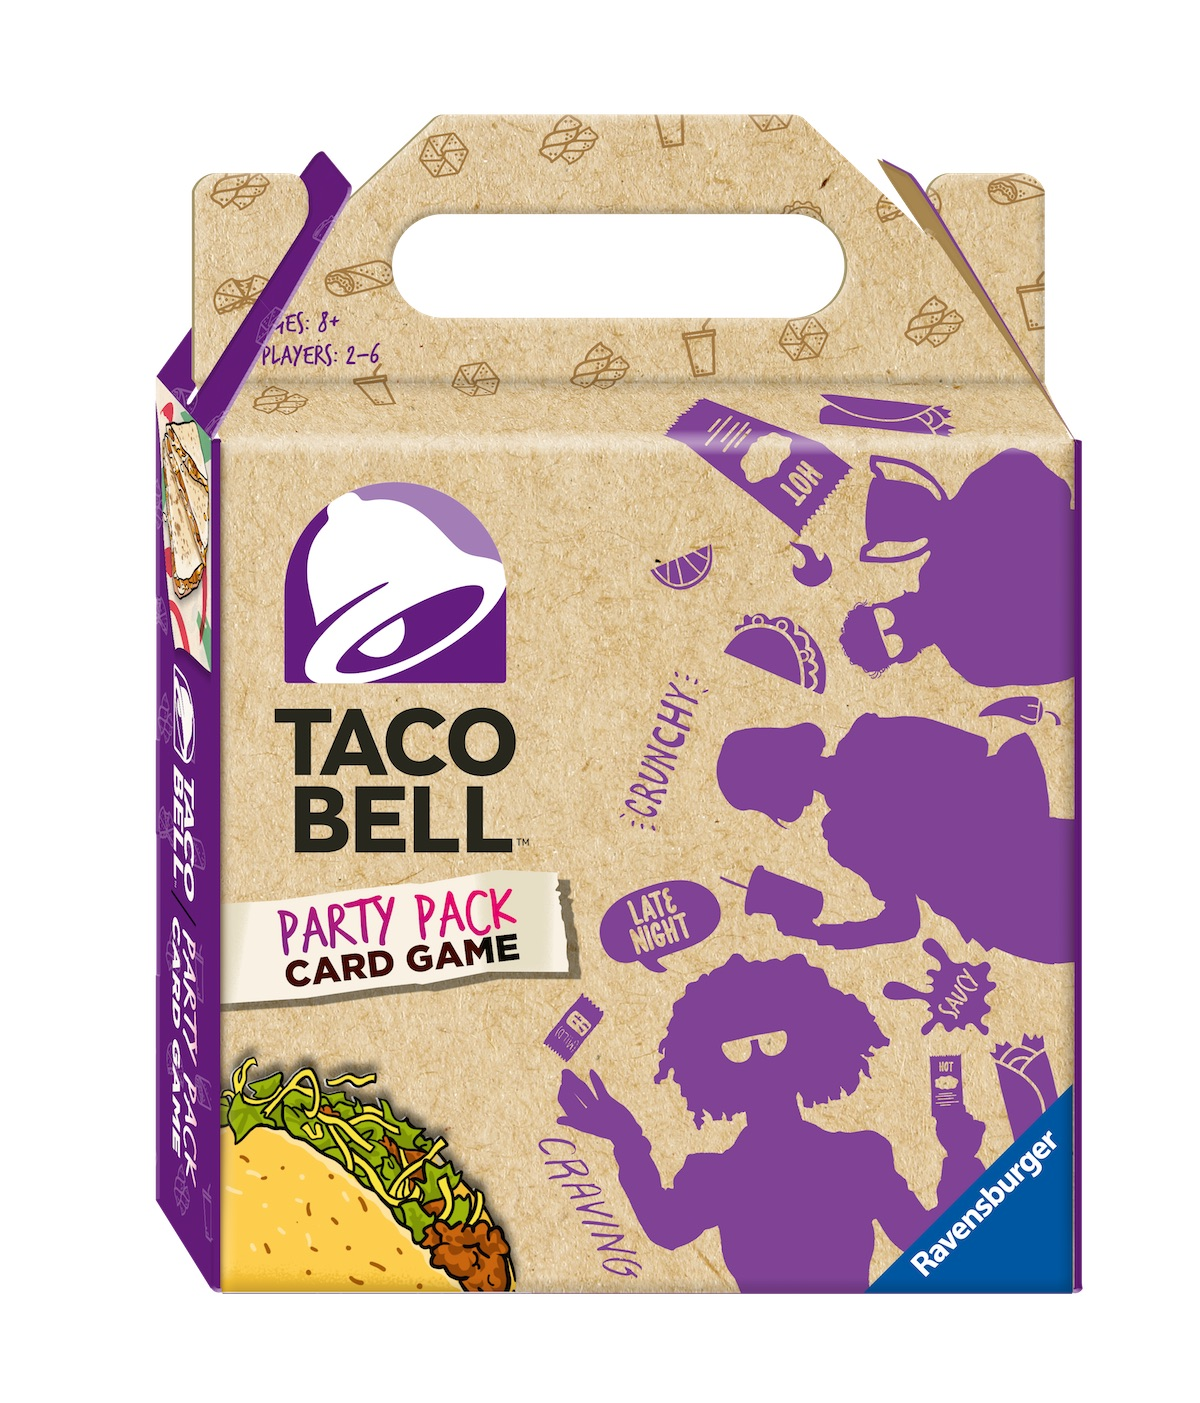 A cardboard Taco Bell carry put box for a board game